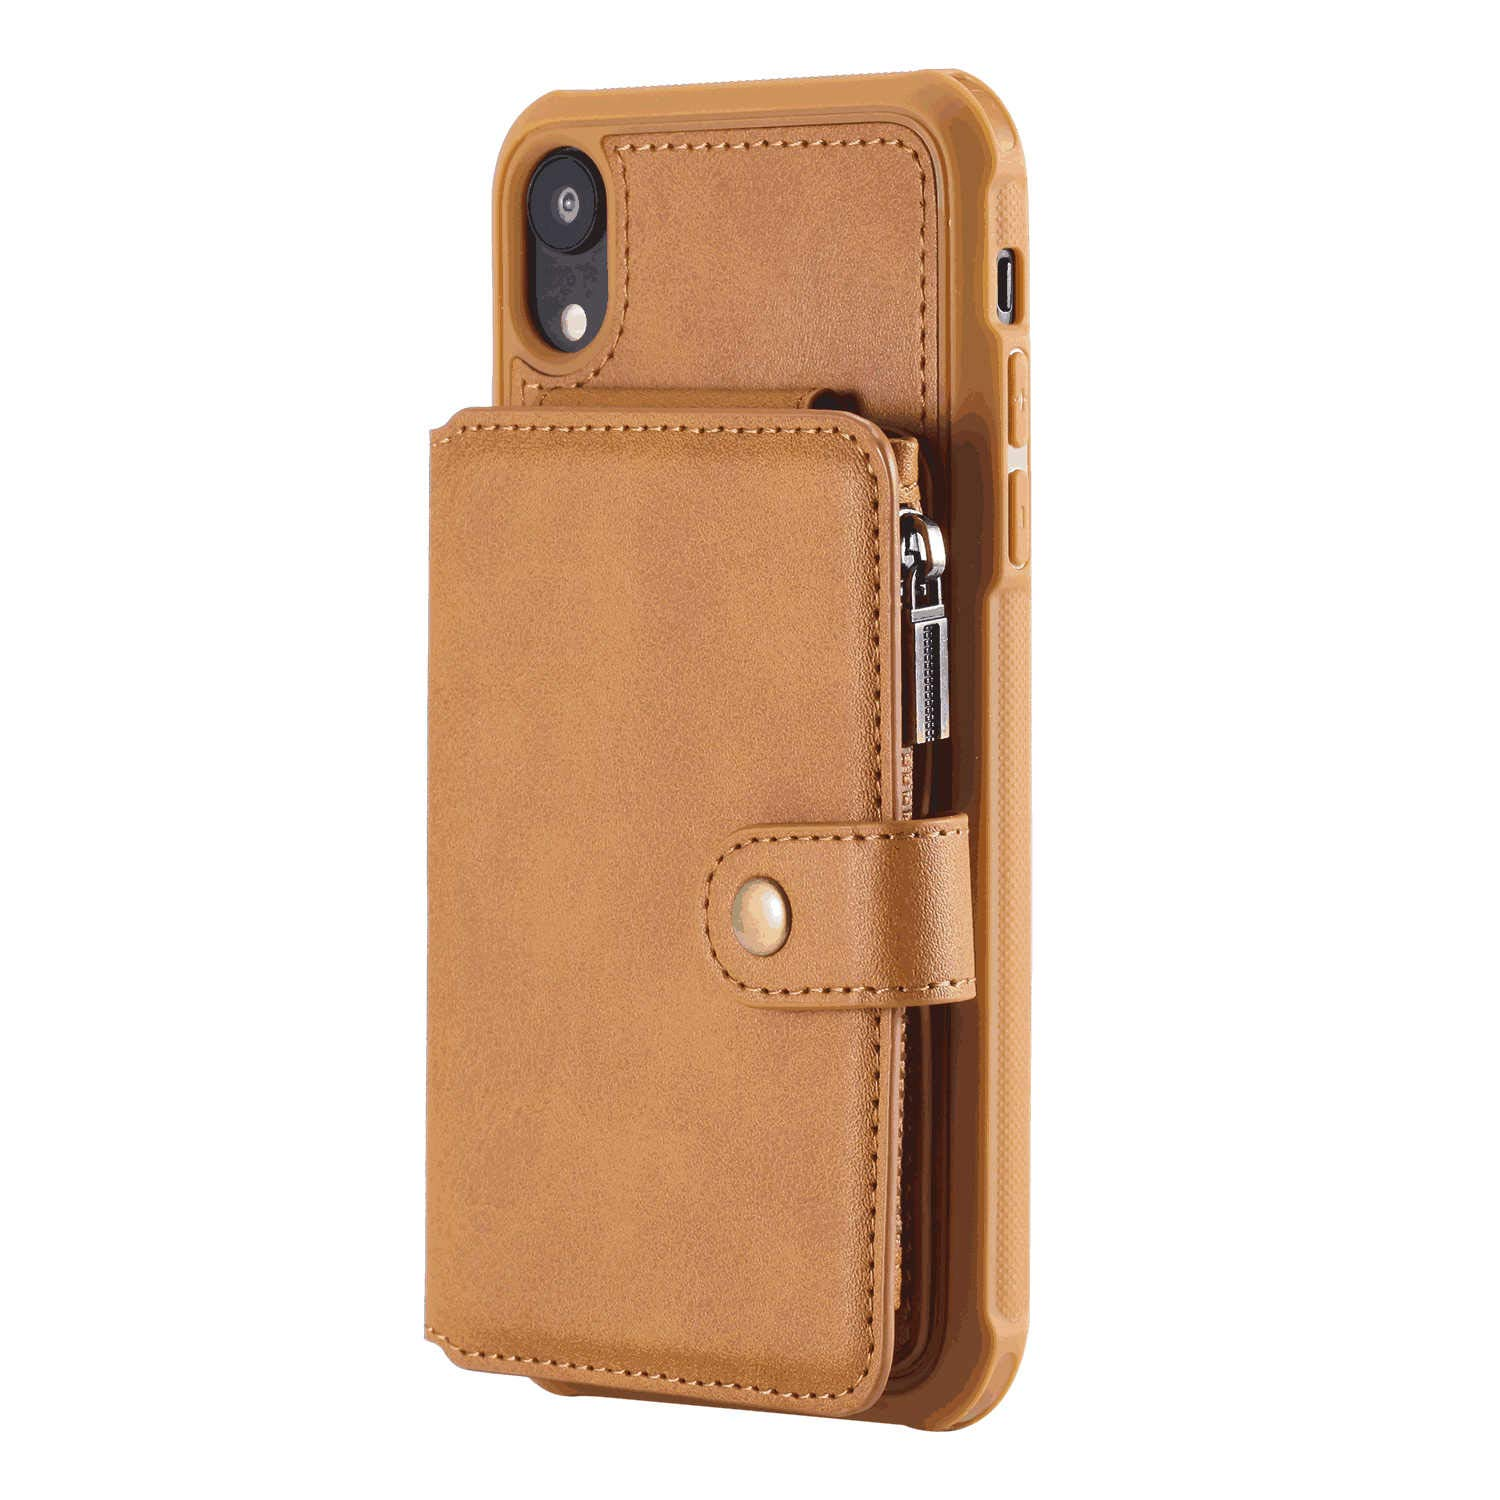 Cover for Leather Kickstand Extra-Durable Business Card Holders Mobile Phone Cover Flip Cover Samsung Galaxy S10 Flip Case